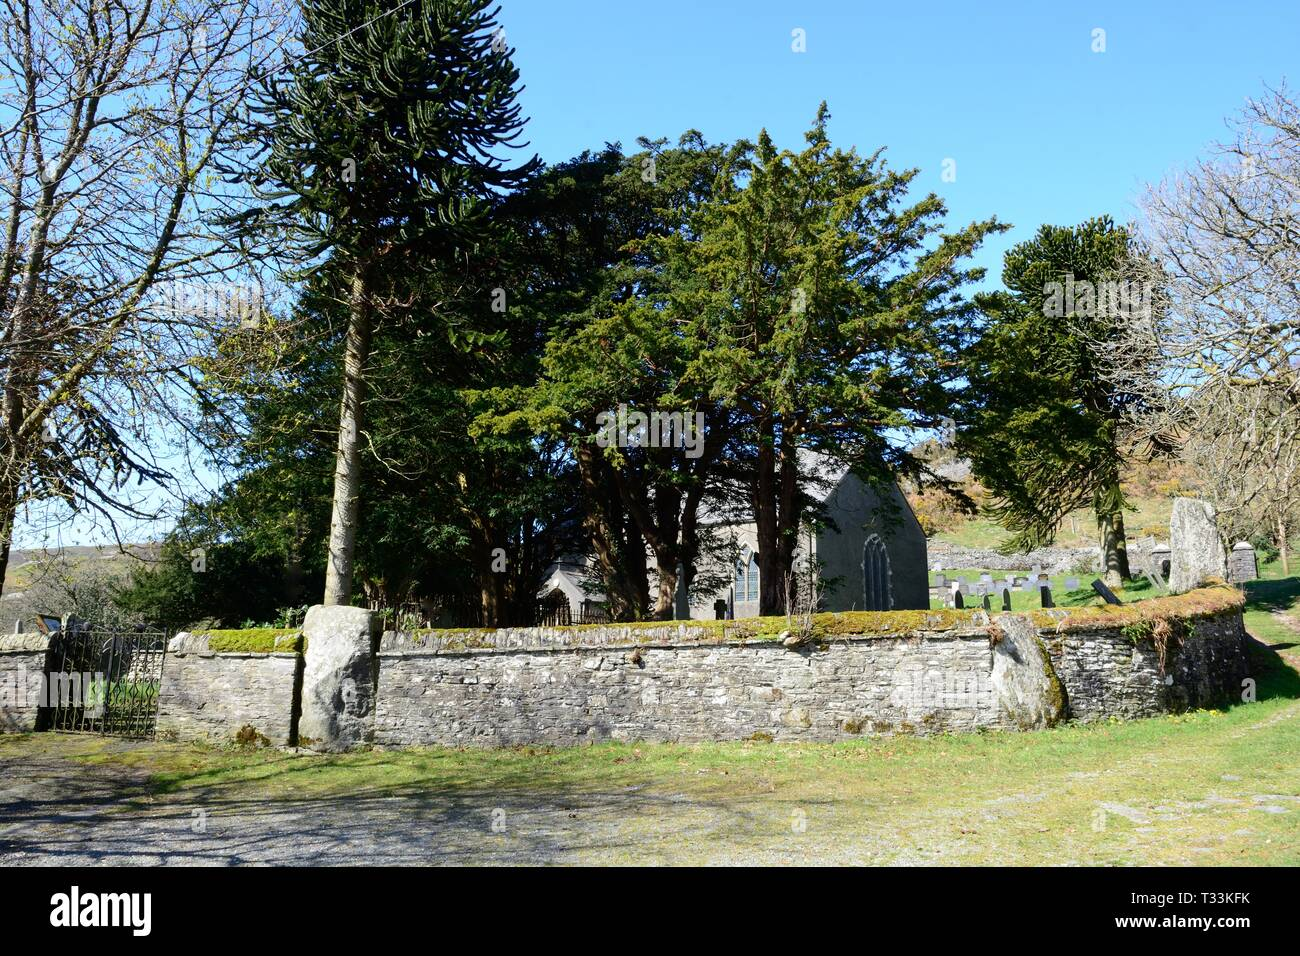 St Johns Church Ysbyty Cynfyn with a circular churchyard with a Bronze Age stone circle built into the surrounding wall  Cardiganshire Wales - Stock Image